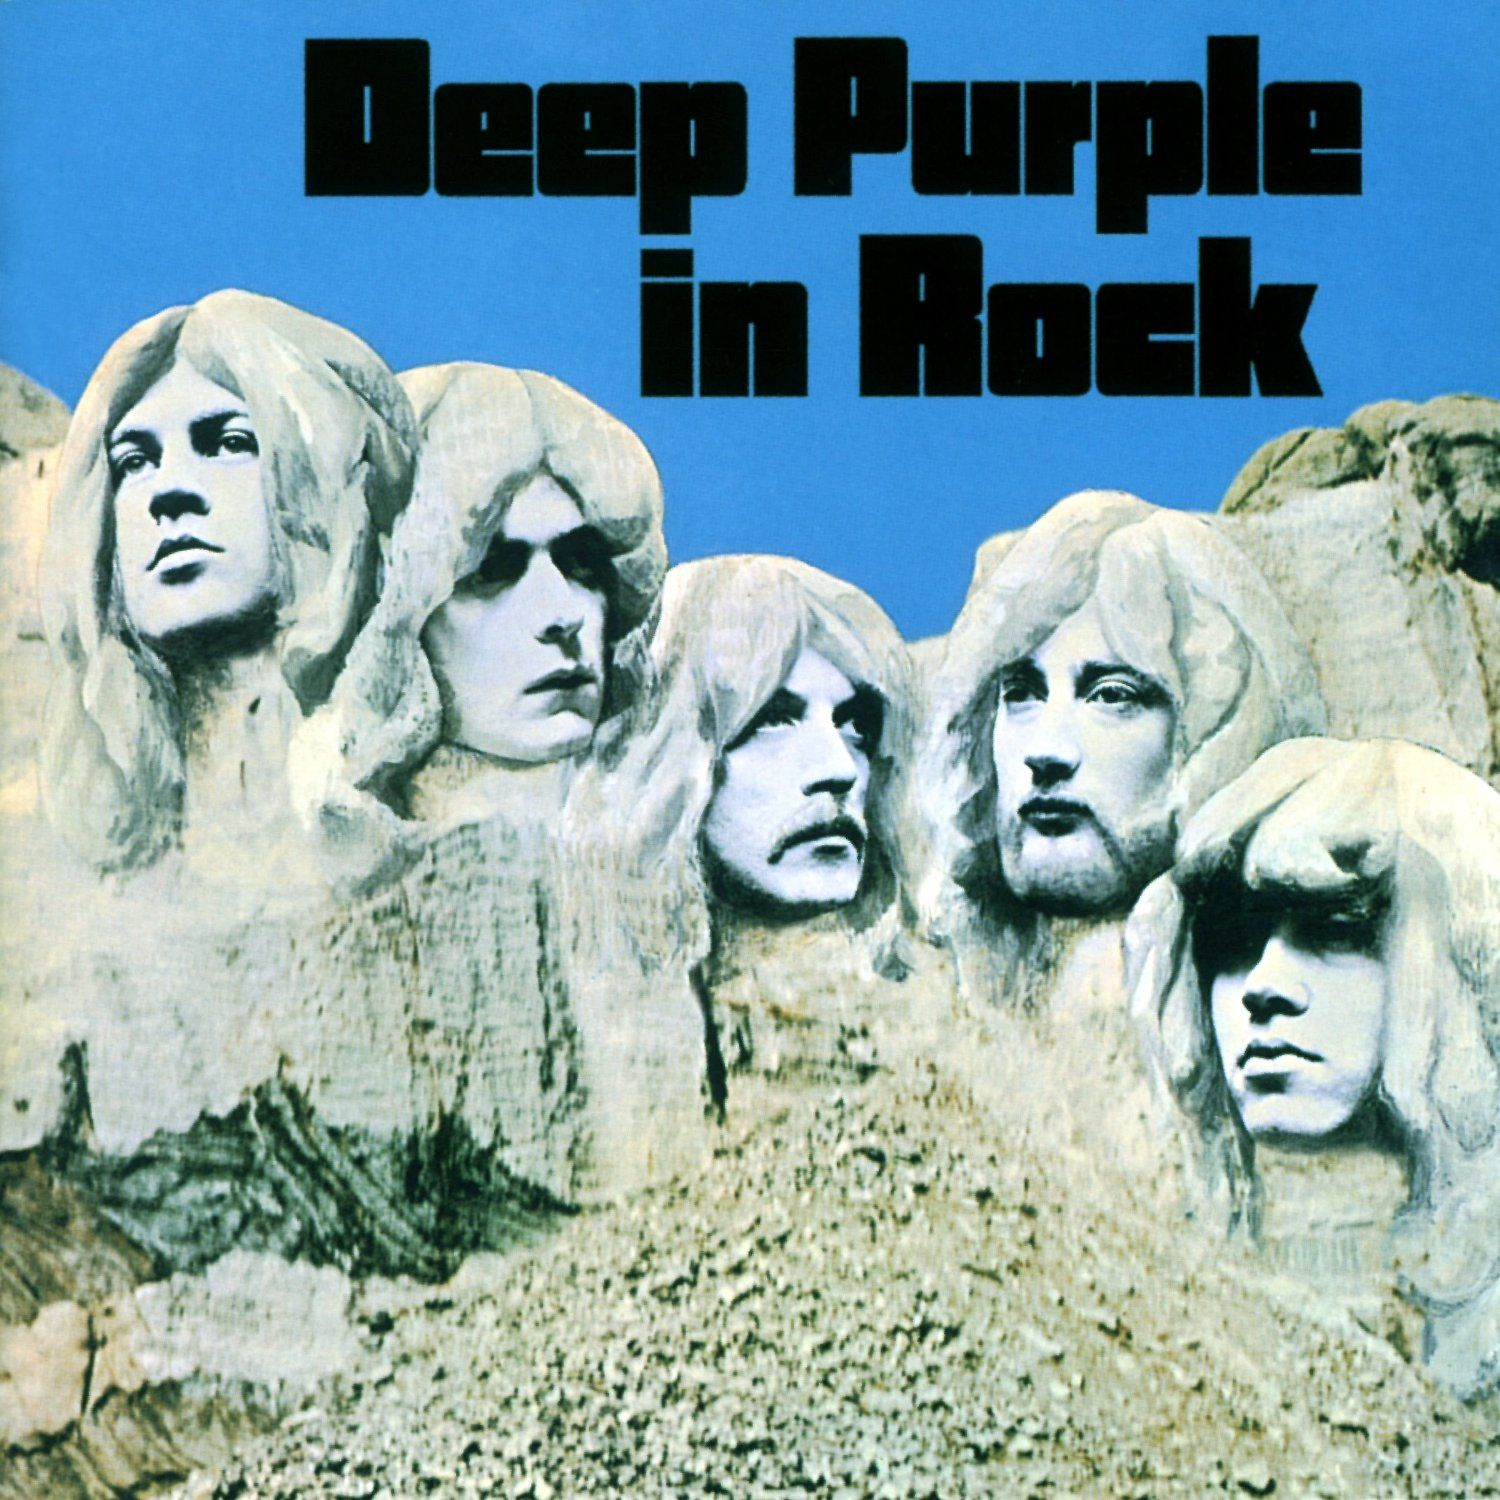 Deep Purple in Rock (1970) is the fourth studio album by